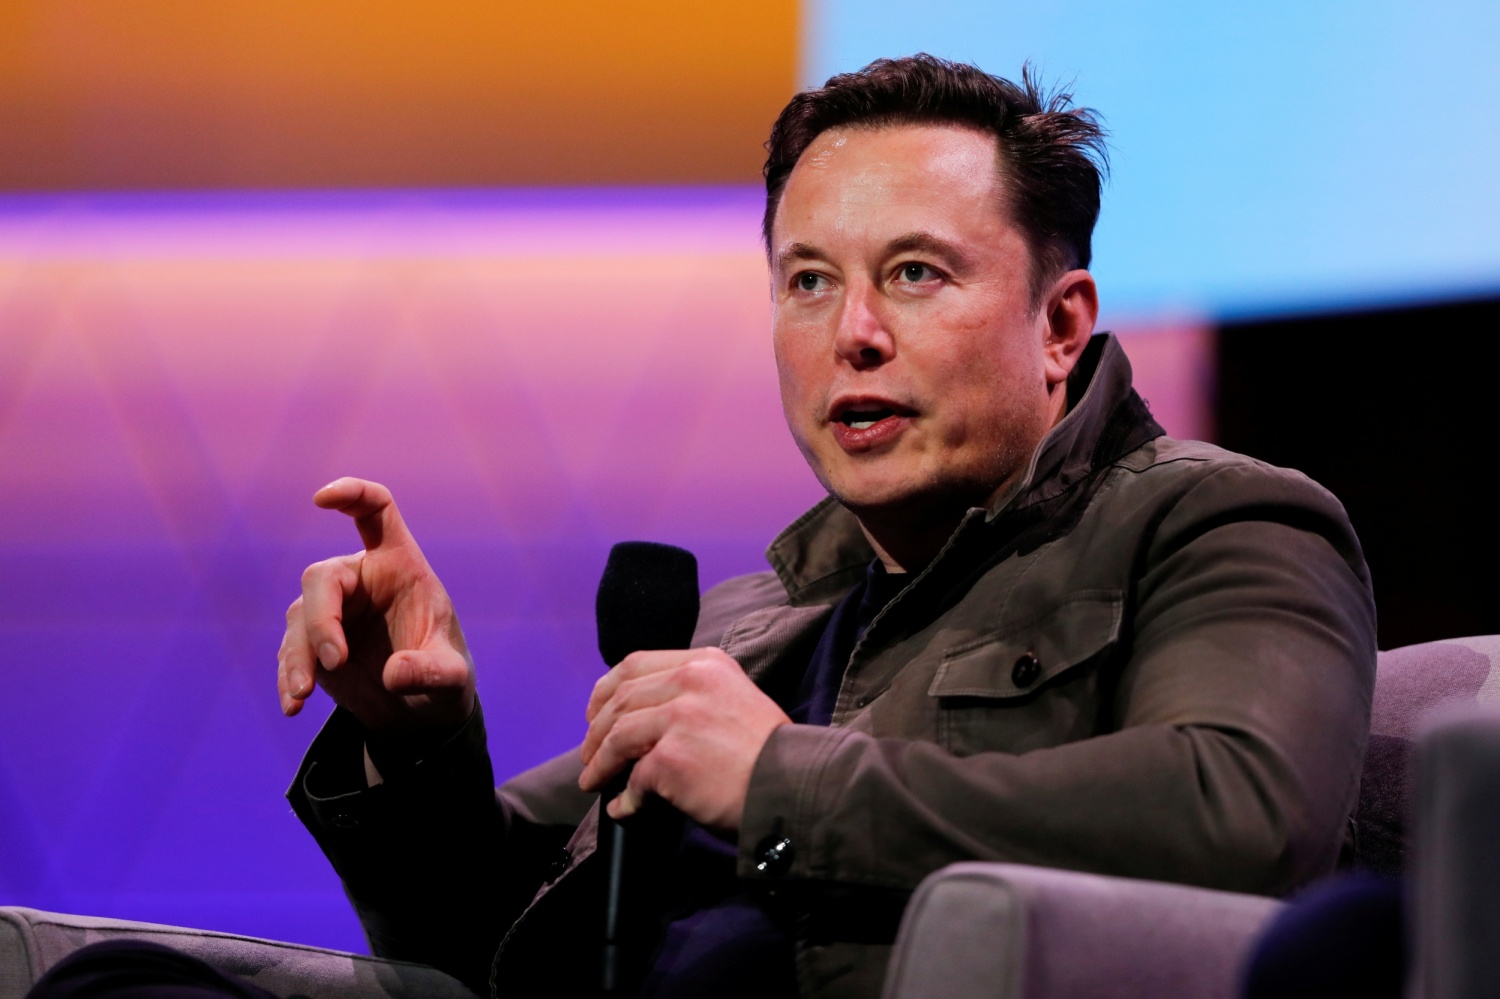 Mow much was raised in the tesla ipo